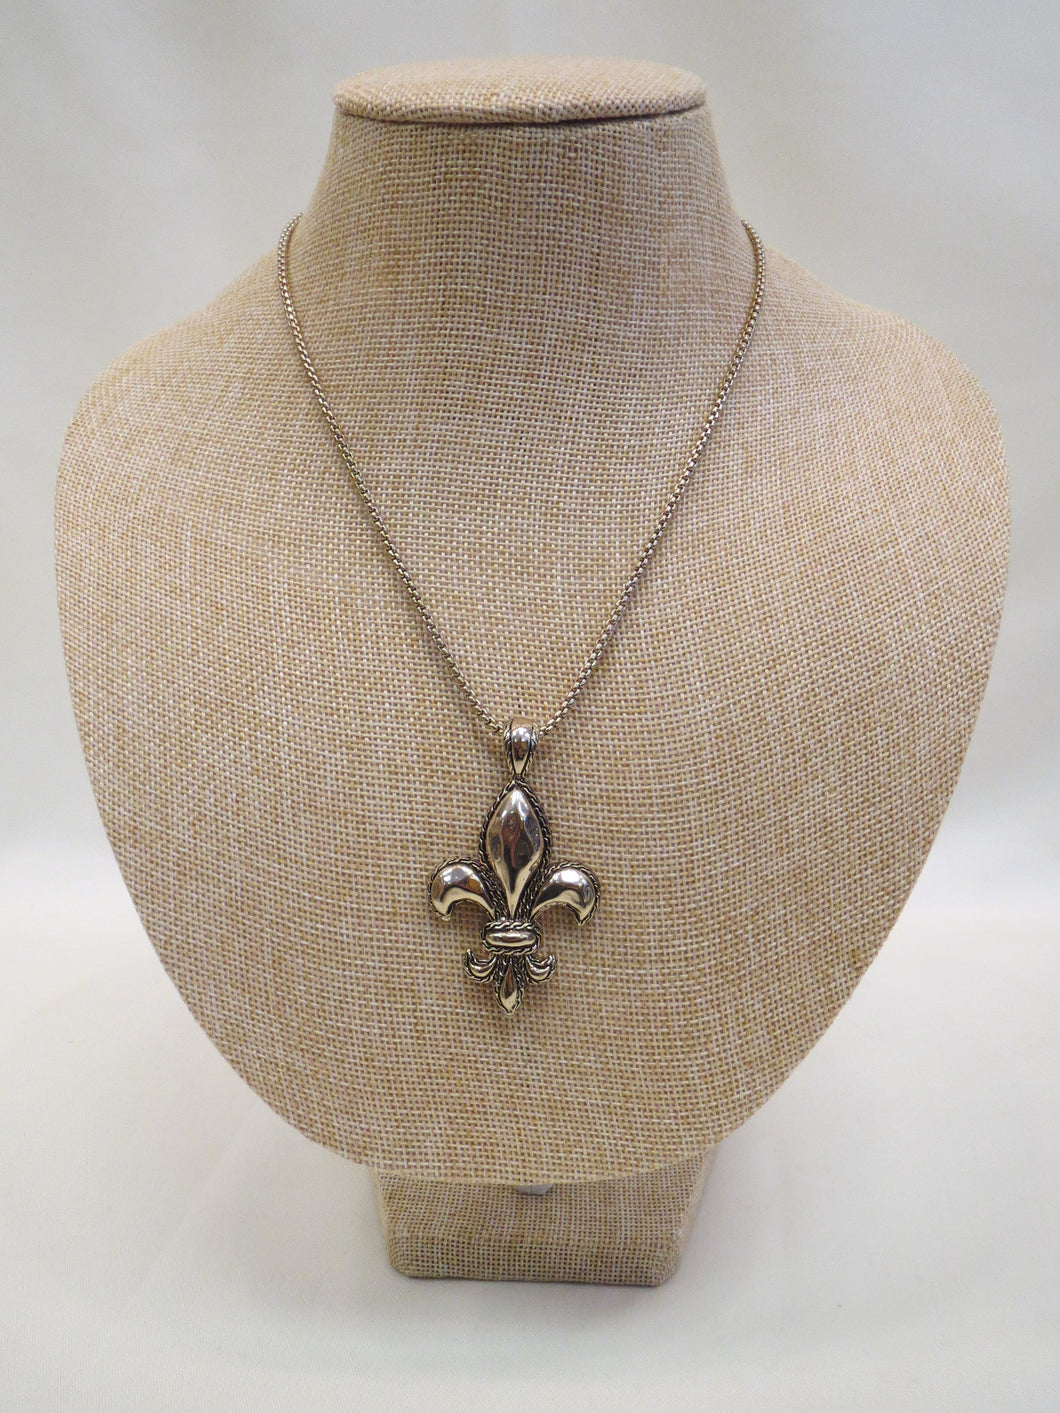 ADO Fleur De Lis Necklace Gold | All Dec'd Out